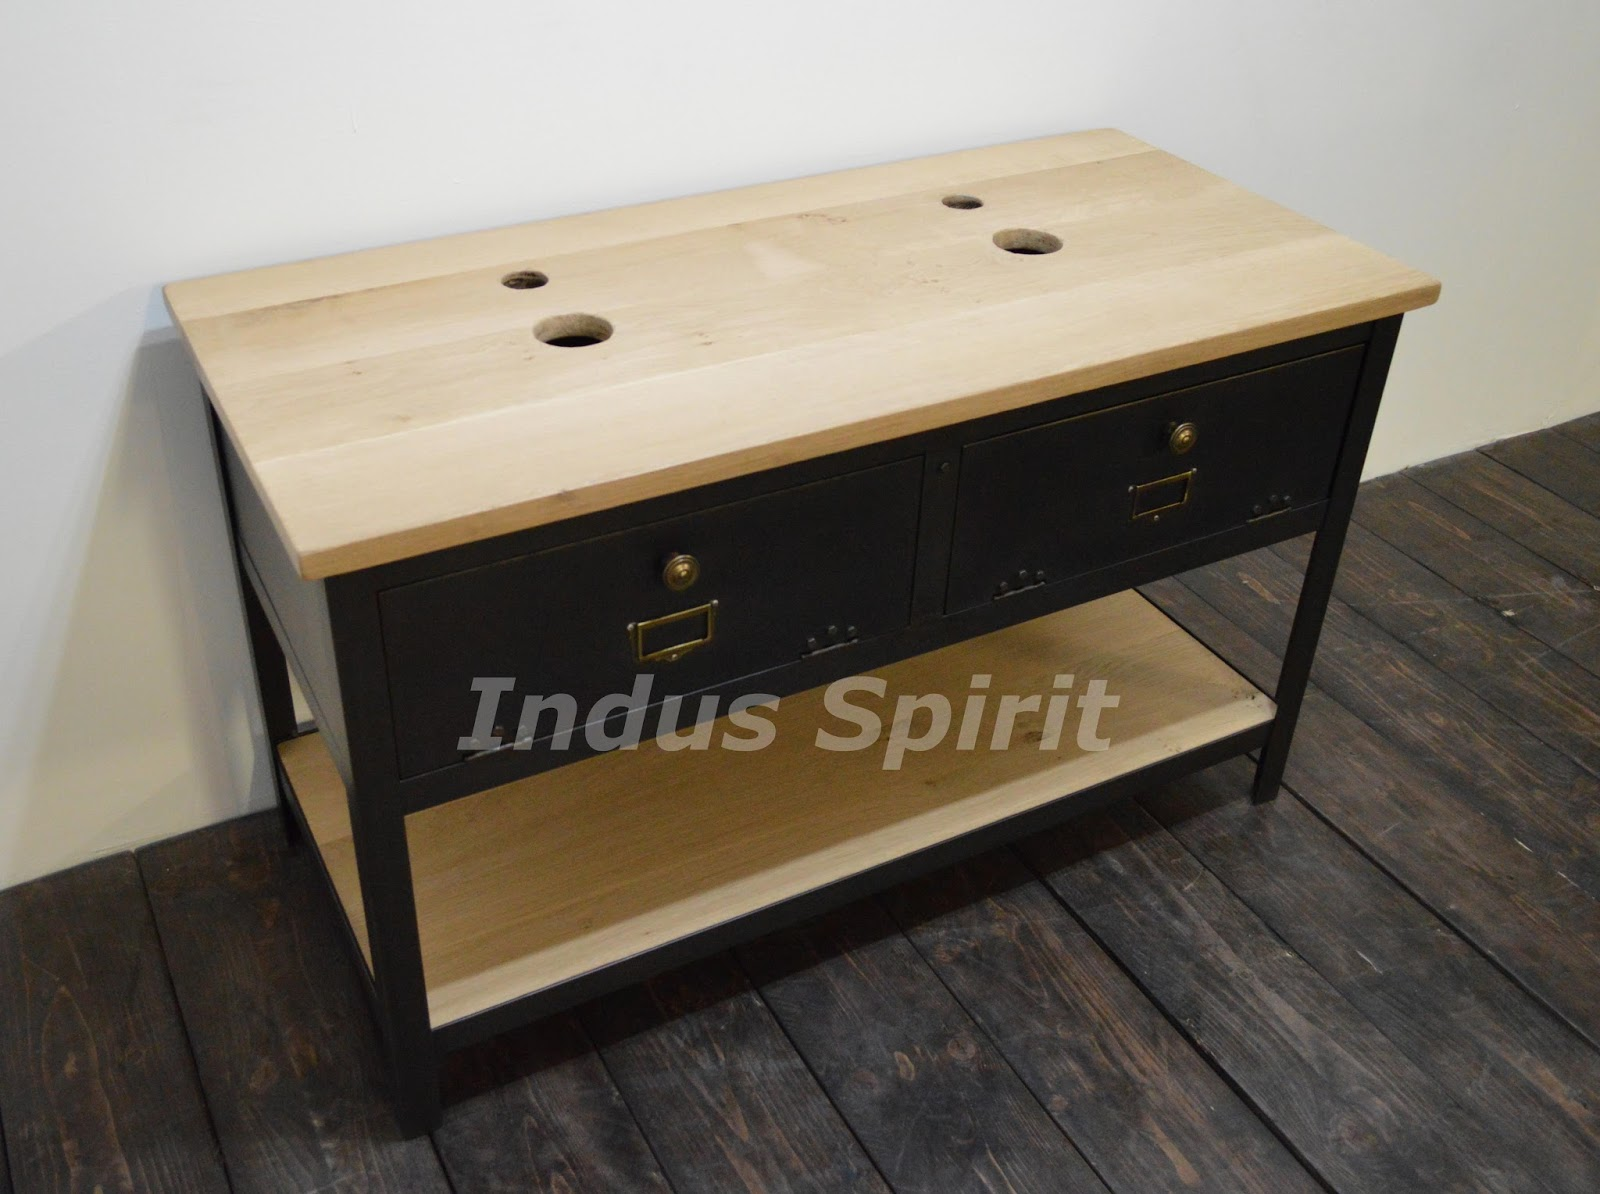 meubles style industriel pas cher maison design. Black Bedroom Furniture Sets. Home Design Ideas